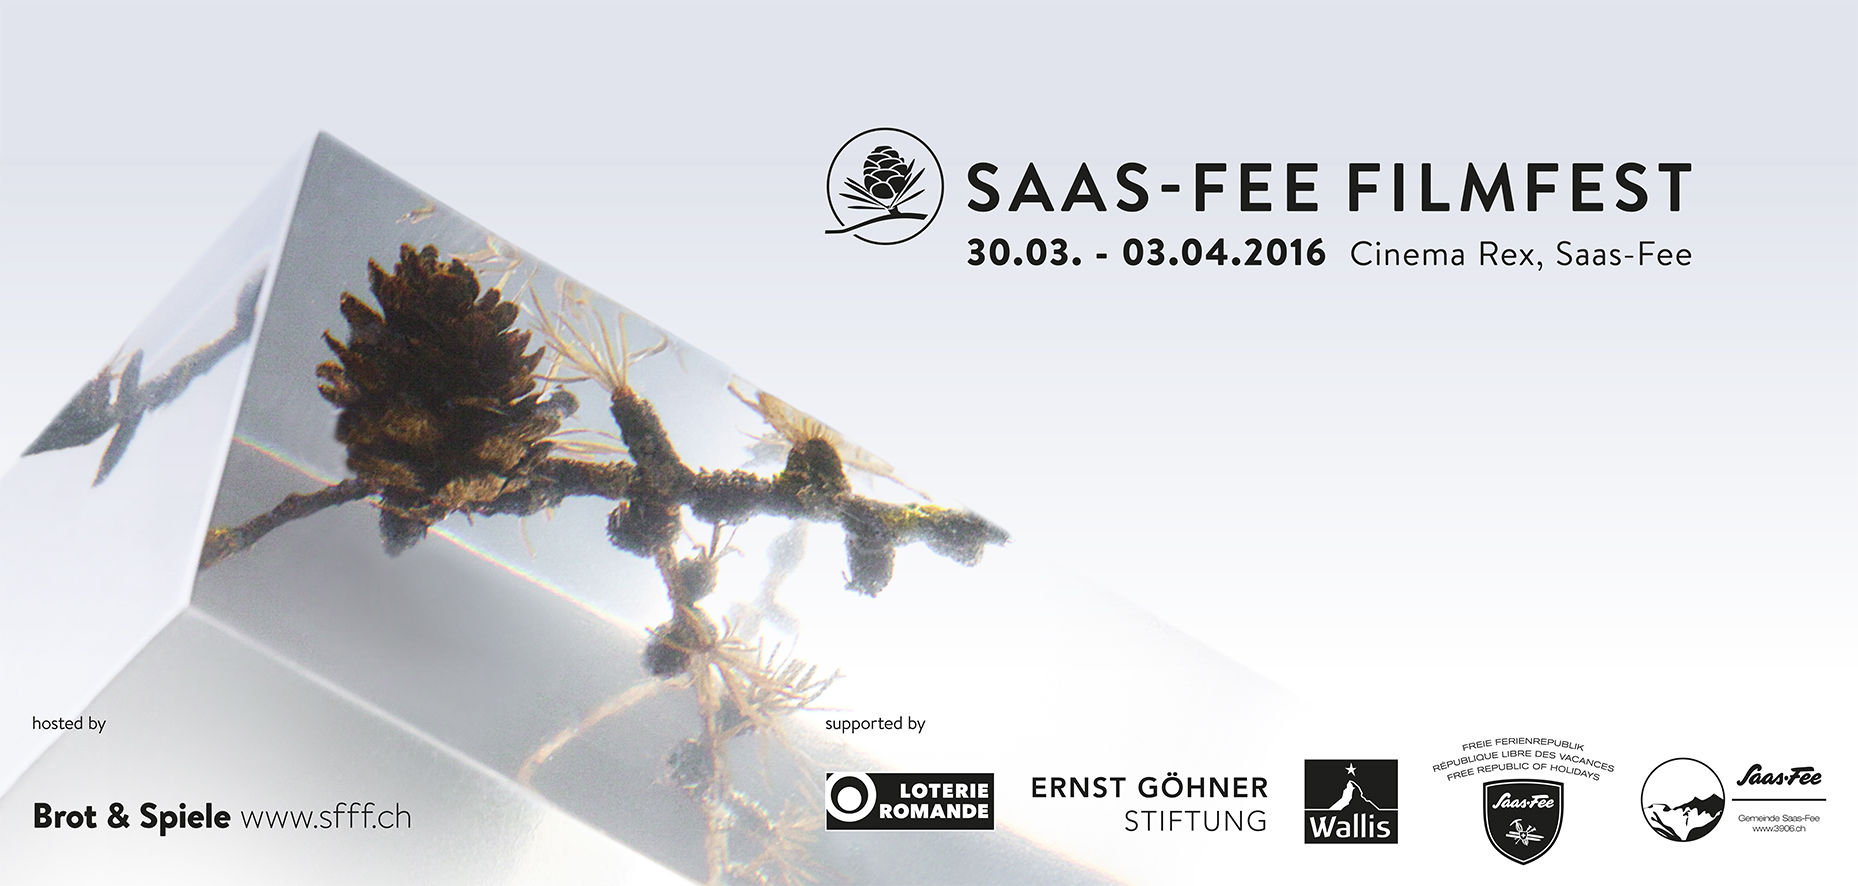 Saas-Fee Filmfest in der Freien Ferienrepublik Saas-Fee